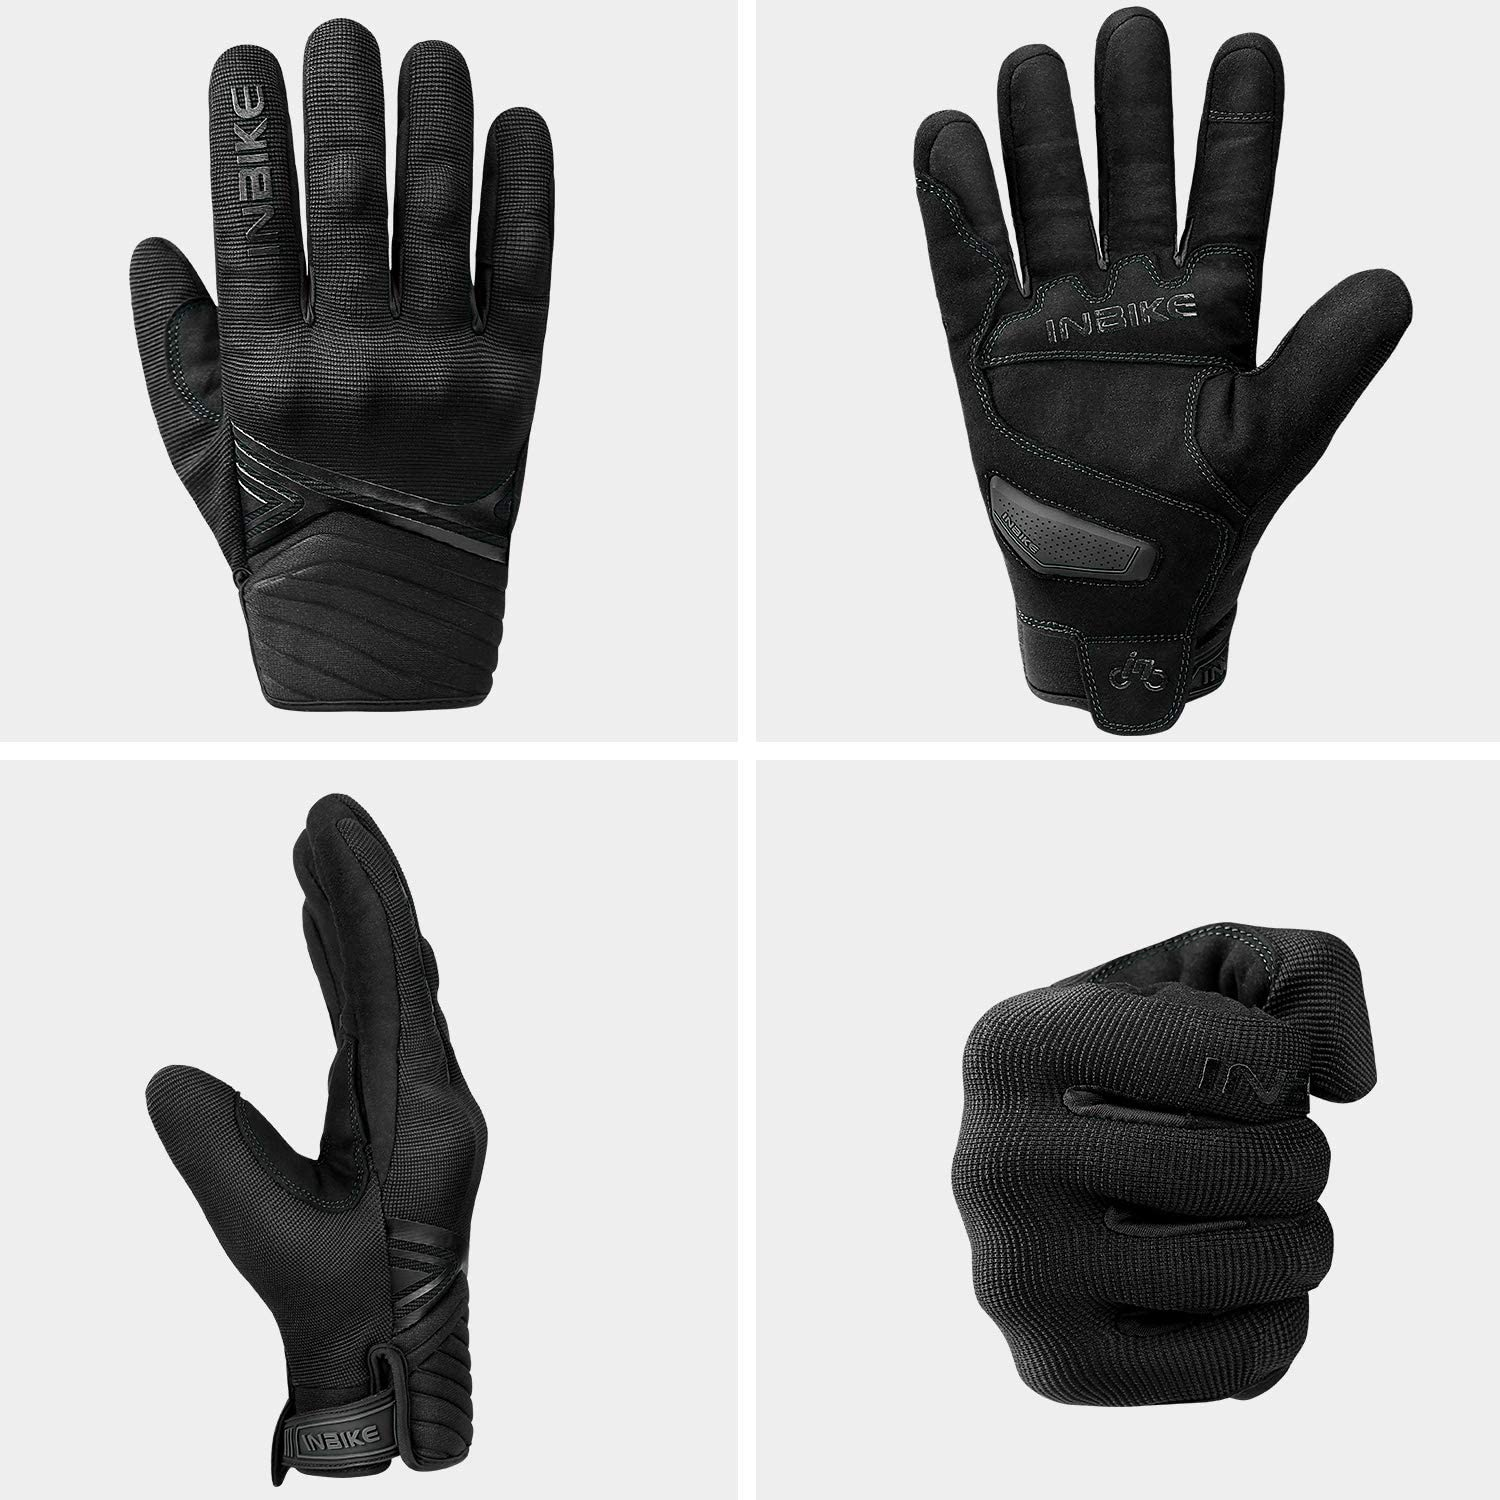 INBIKE Waterproof Winter Motorcycle Gloves Thermal Fleece Touchscreen with TPR Palm Pad Cushioning Hard Knuckle White XX-Large